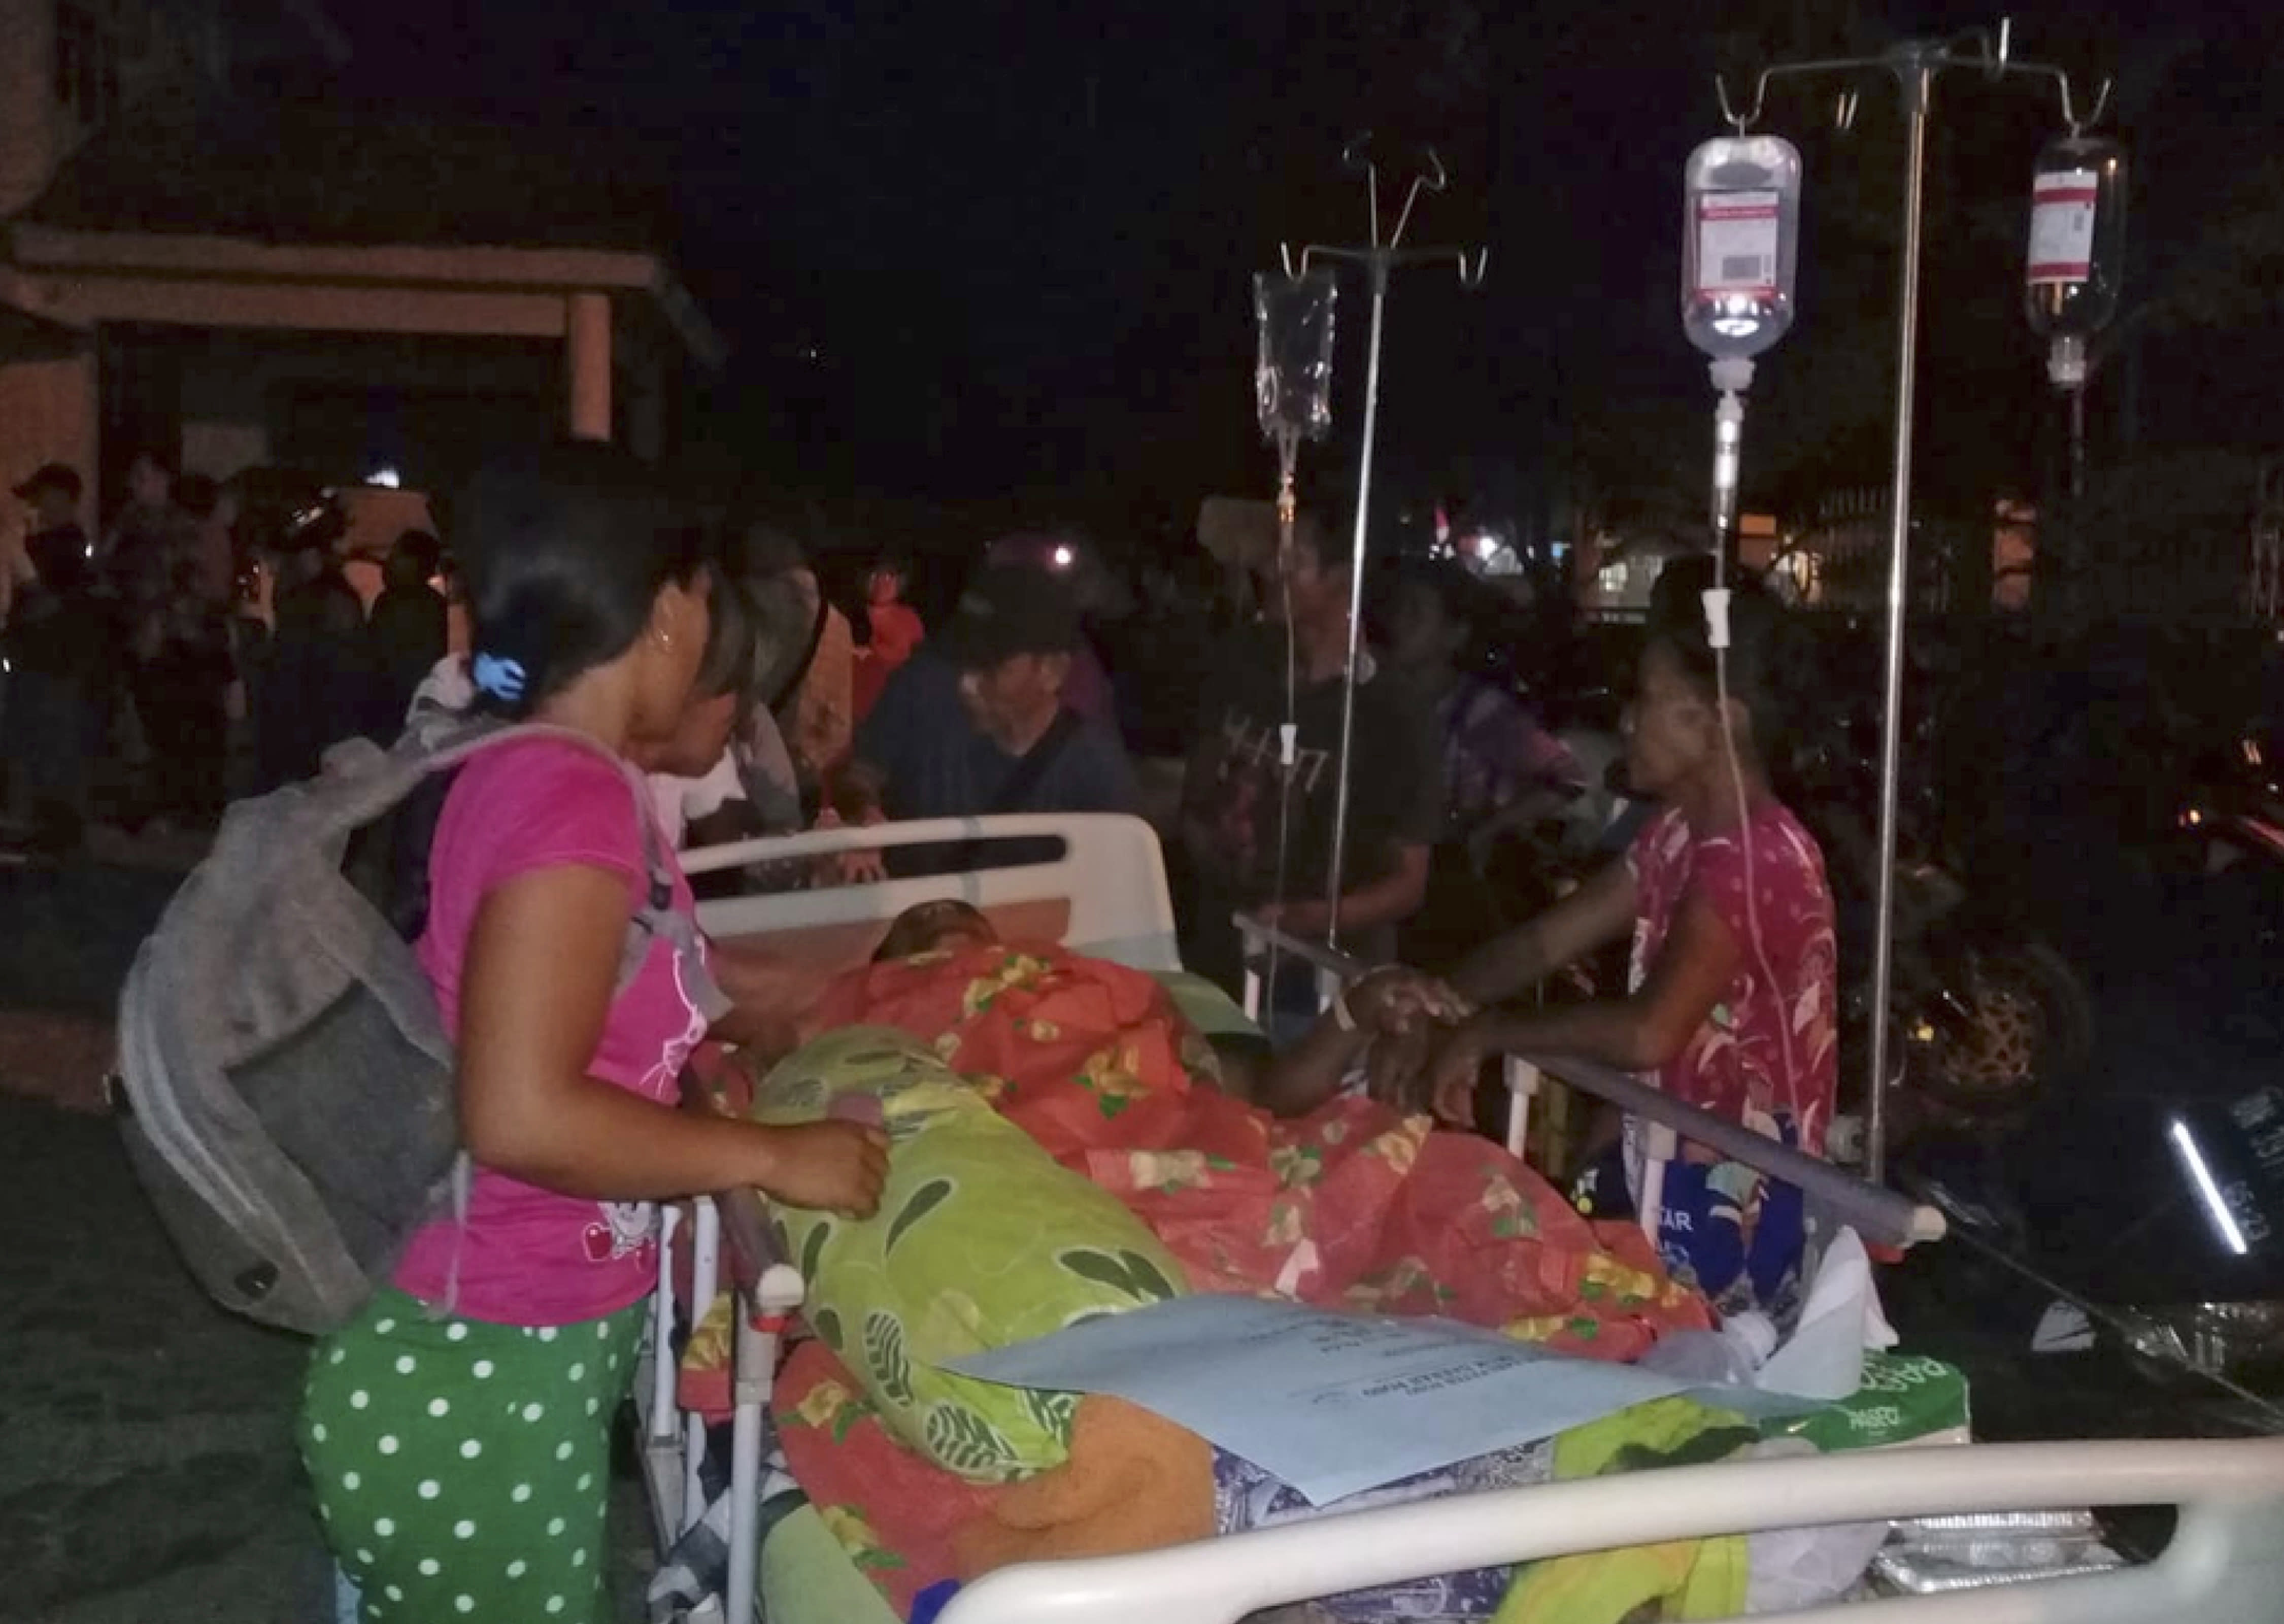 Patients are evacuated from a hospital following a strong earthquake in Poso, central Sulawesi, Indonesia, Friday, Sept. 28, 2018. Powerful earthquakes jolted the Indonesian island of Sulawesi on Friday, damaging houses and briefly triggered a tsunami warning. (AP Photo/Yoanes Litha)